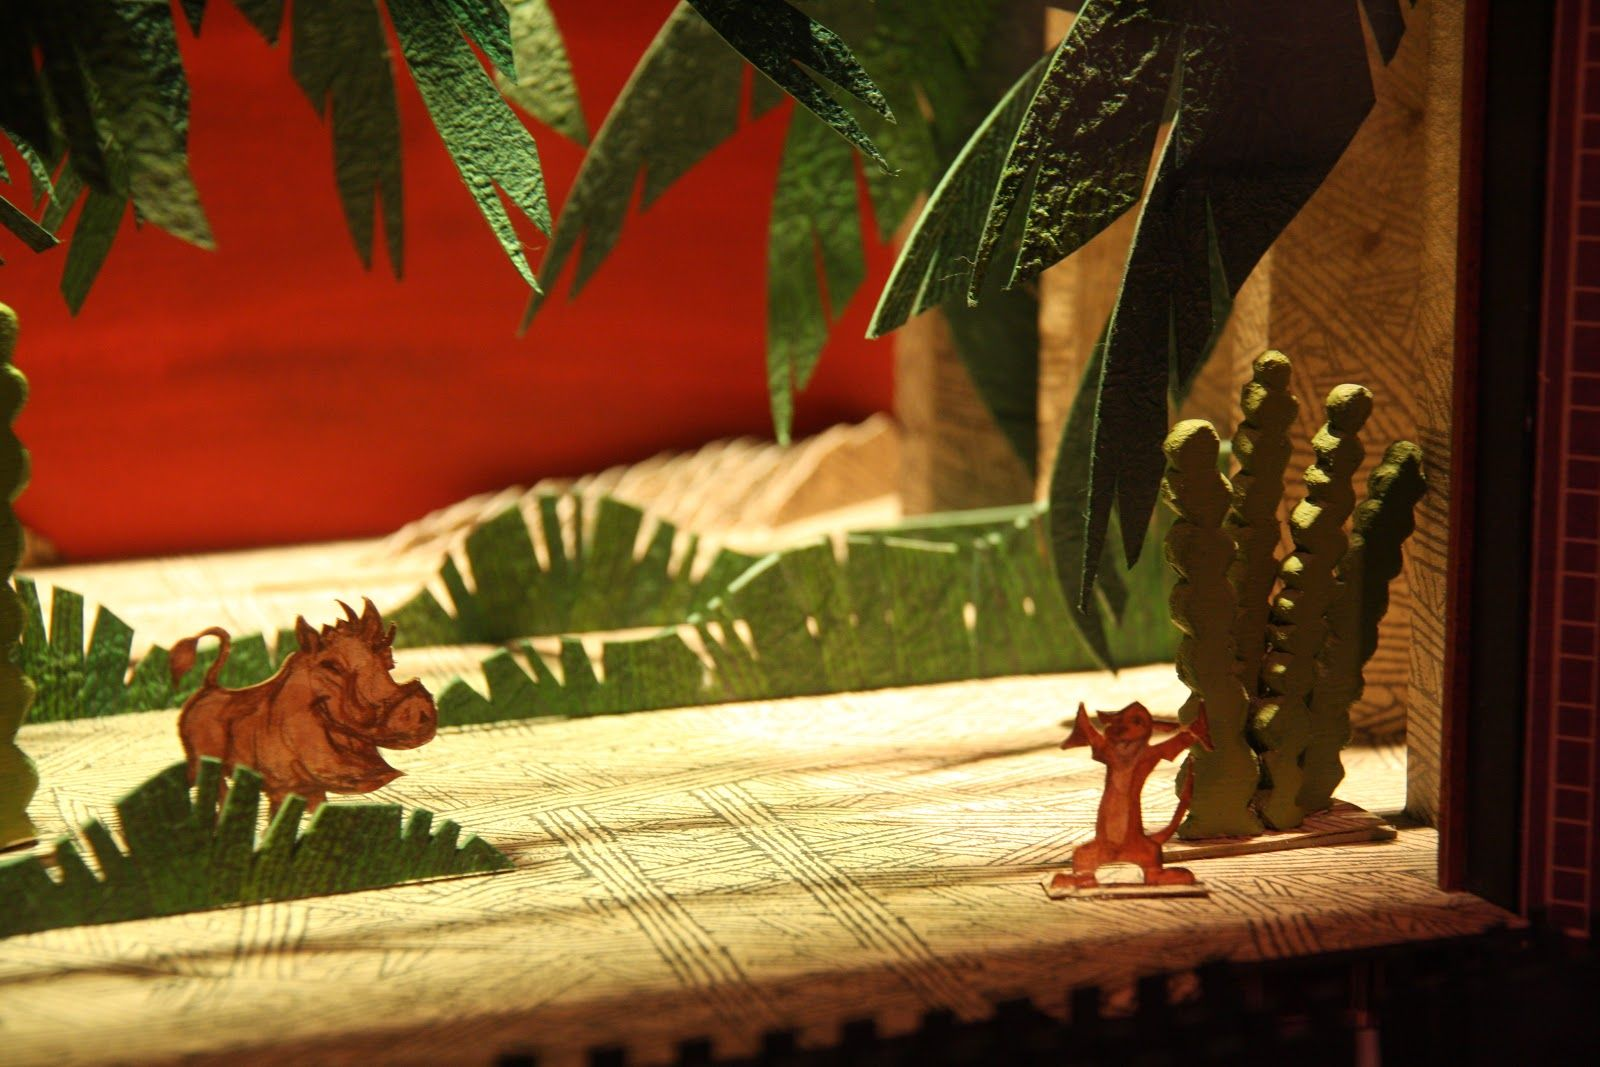 the lion king set design - Google Search